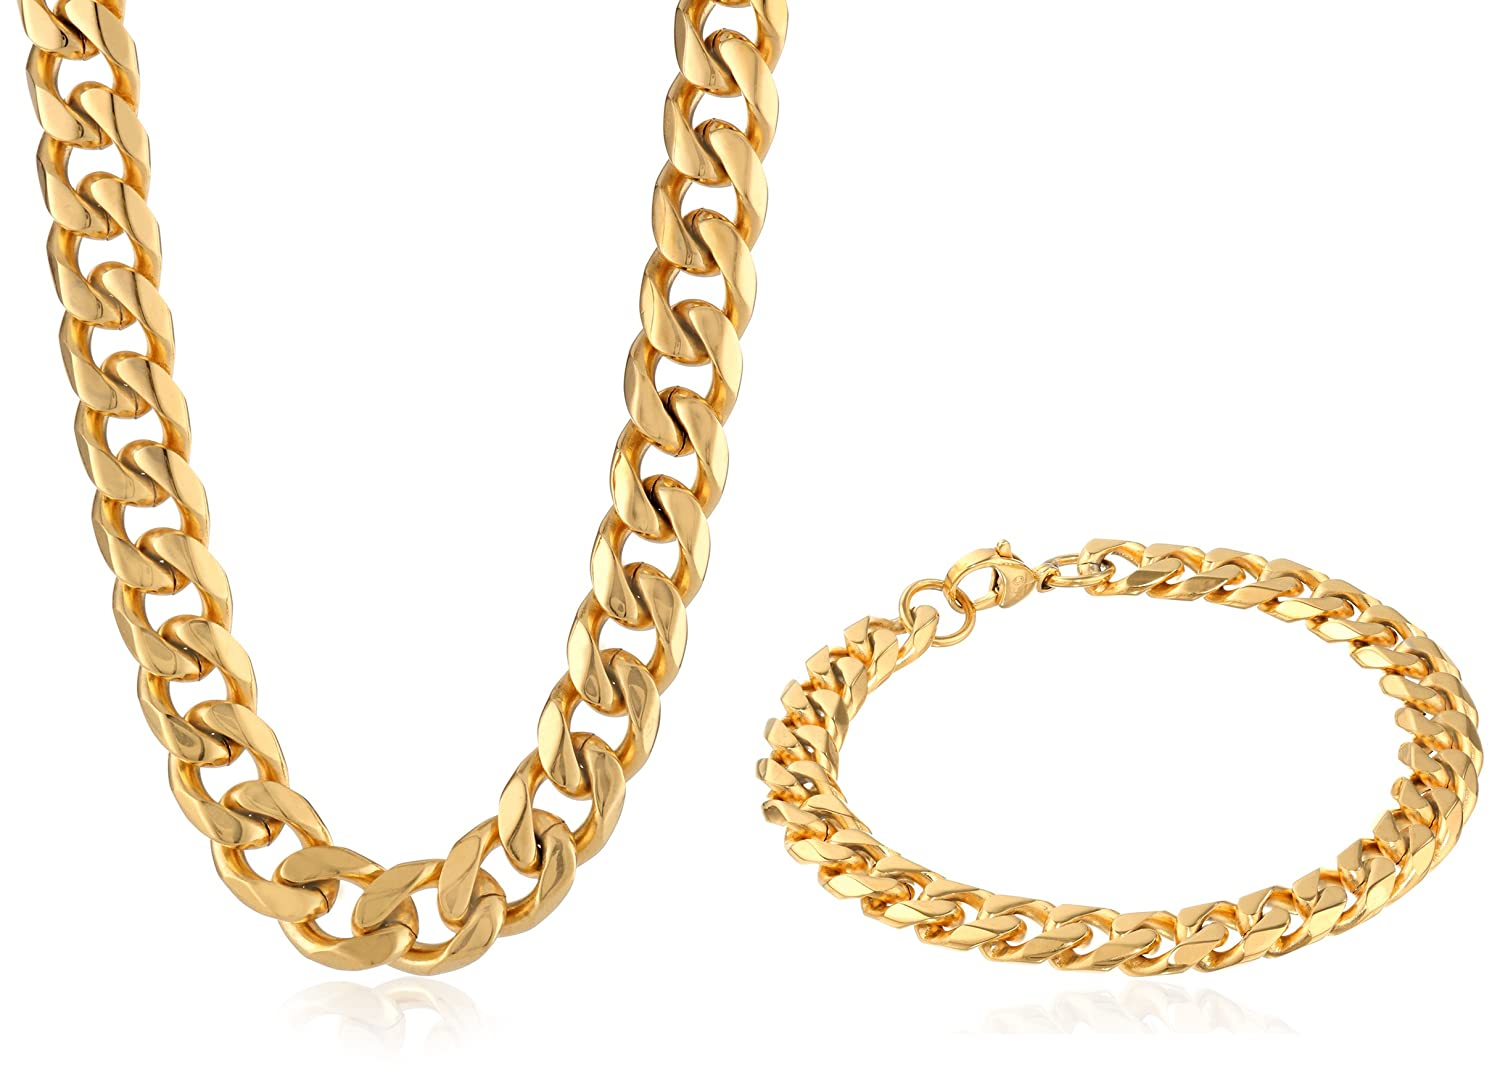 product yellow chain men hot chains s jewelry necklaces fashion long cuban necklace link gold mens mm classic store for plated